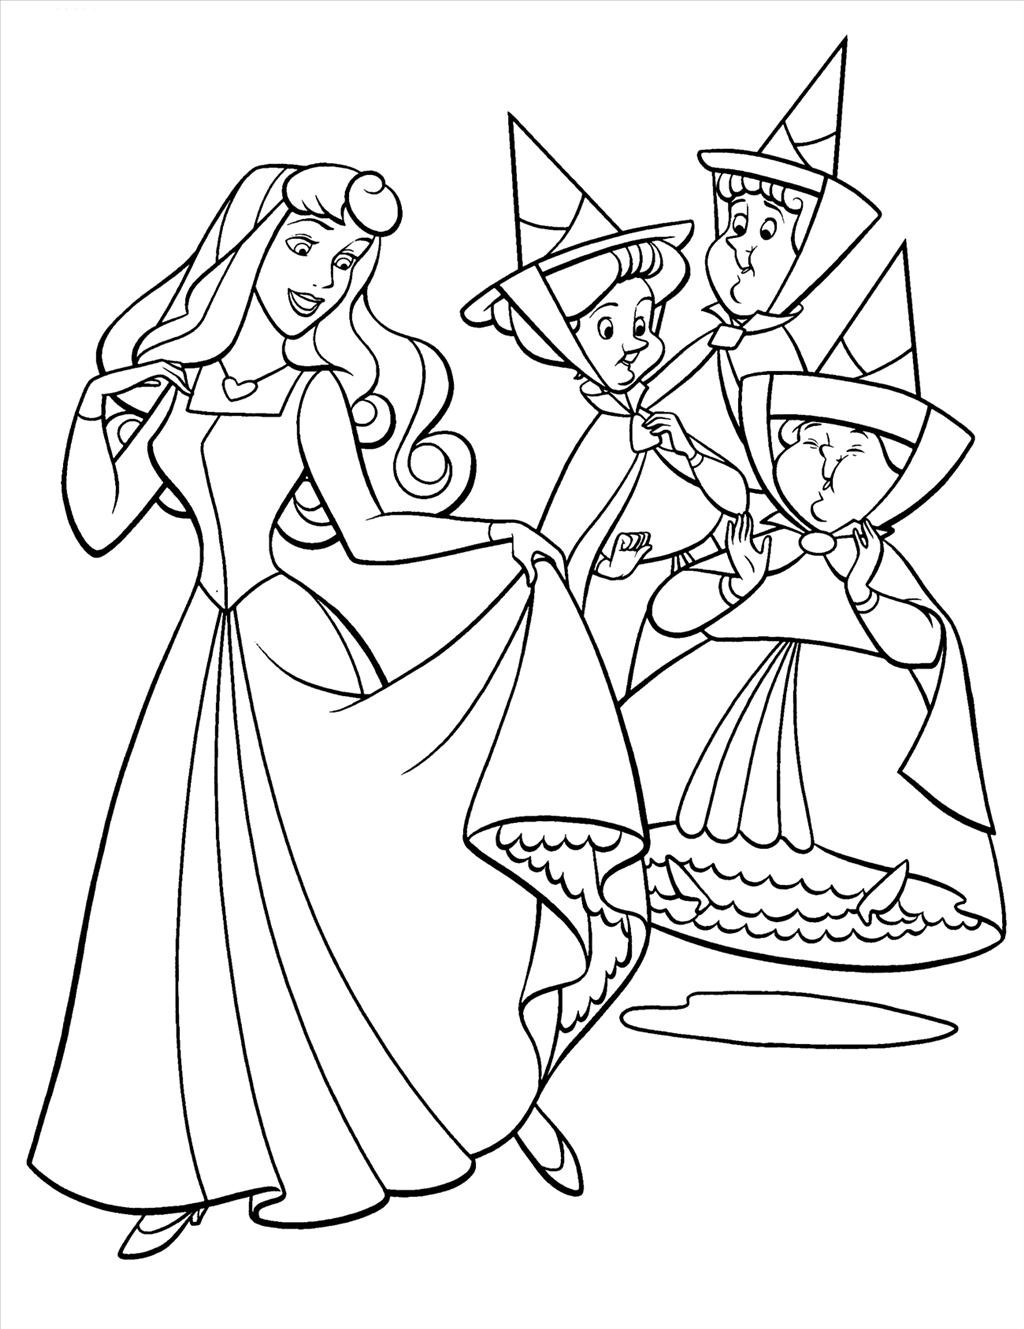 1024x1329 Sleeping Beauty With Animals Coloring Pages For Kids General